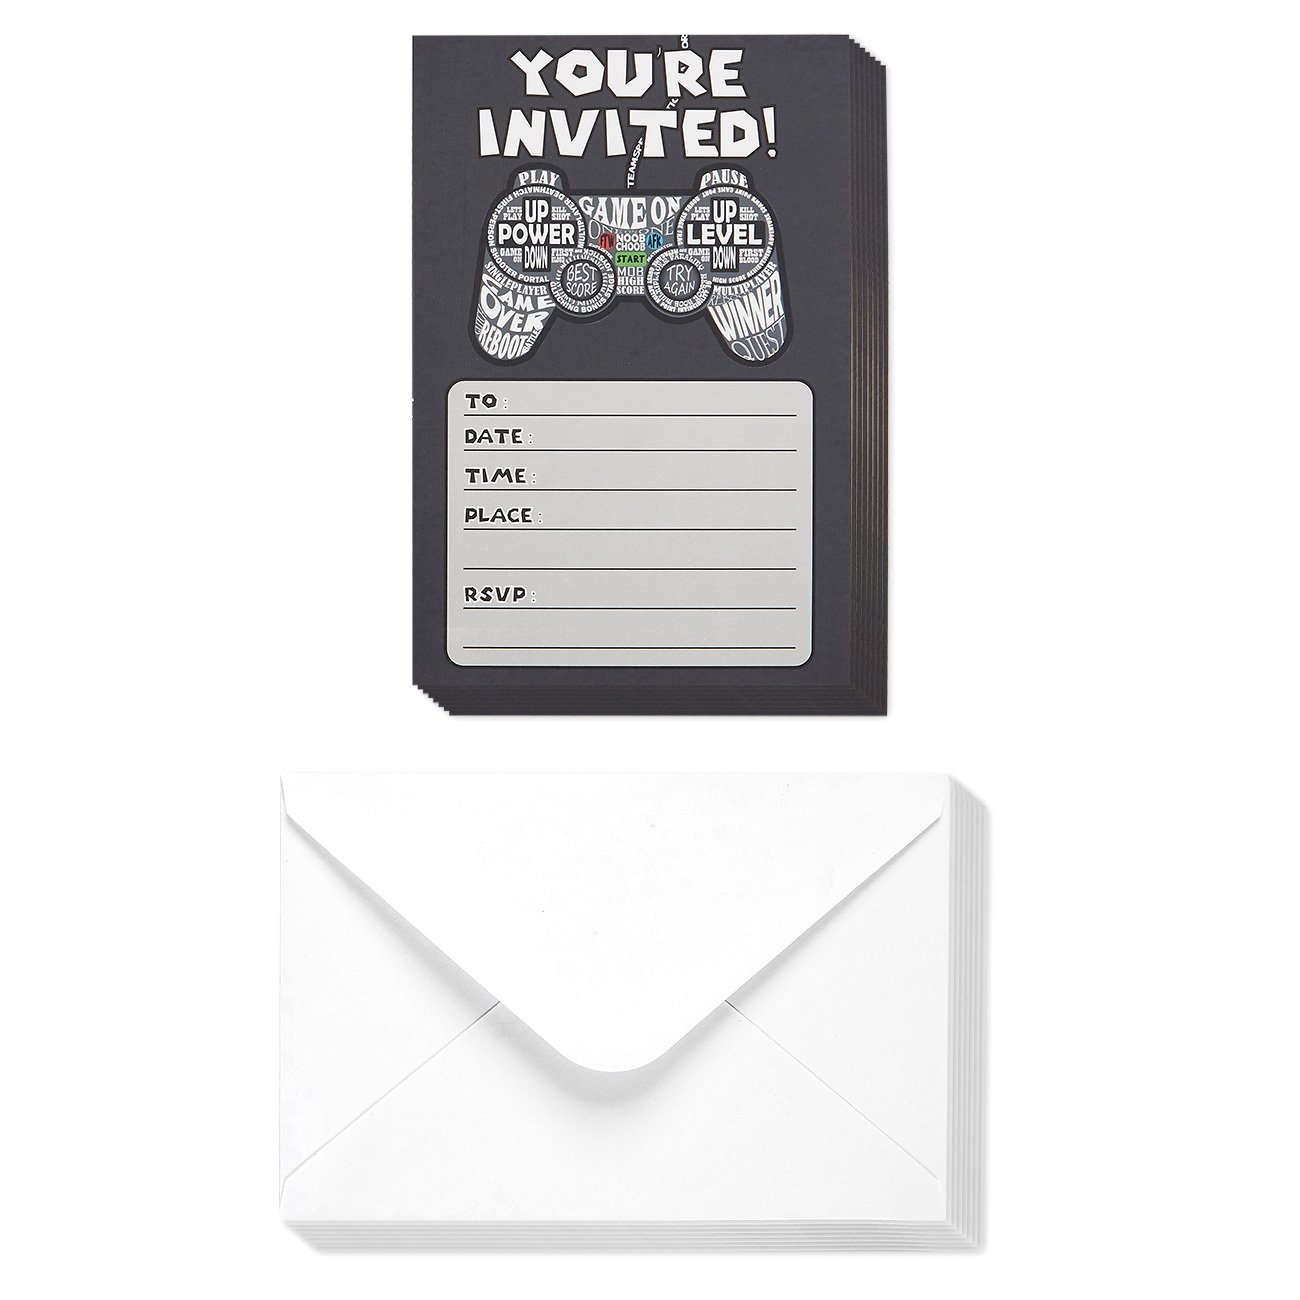 Party Invitations - Pack of 40, Video Game Theme Postcard Invitations - Includes Envelopes - Video Game Birthday Party Supplies, 4 x 6 inches